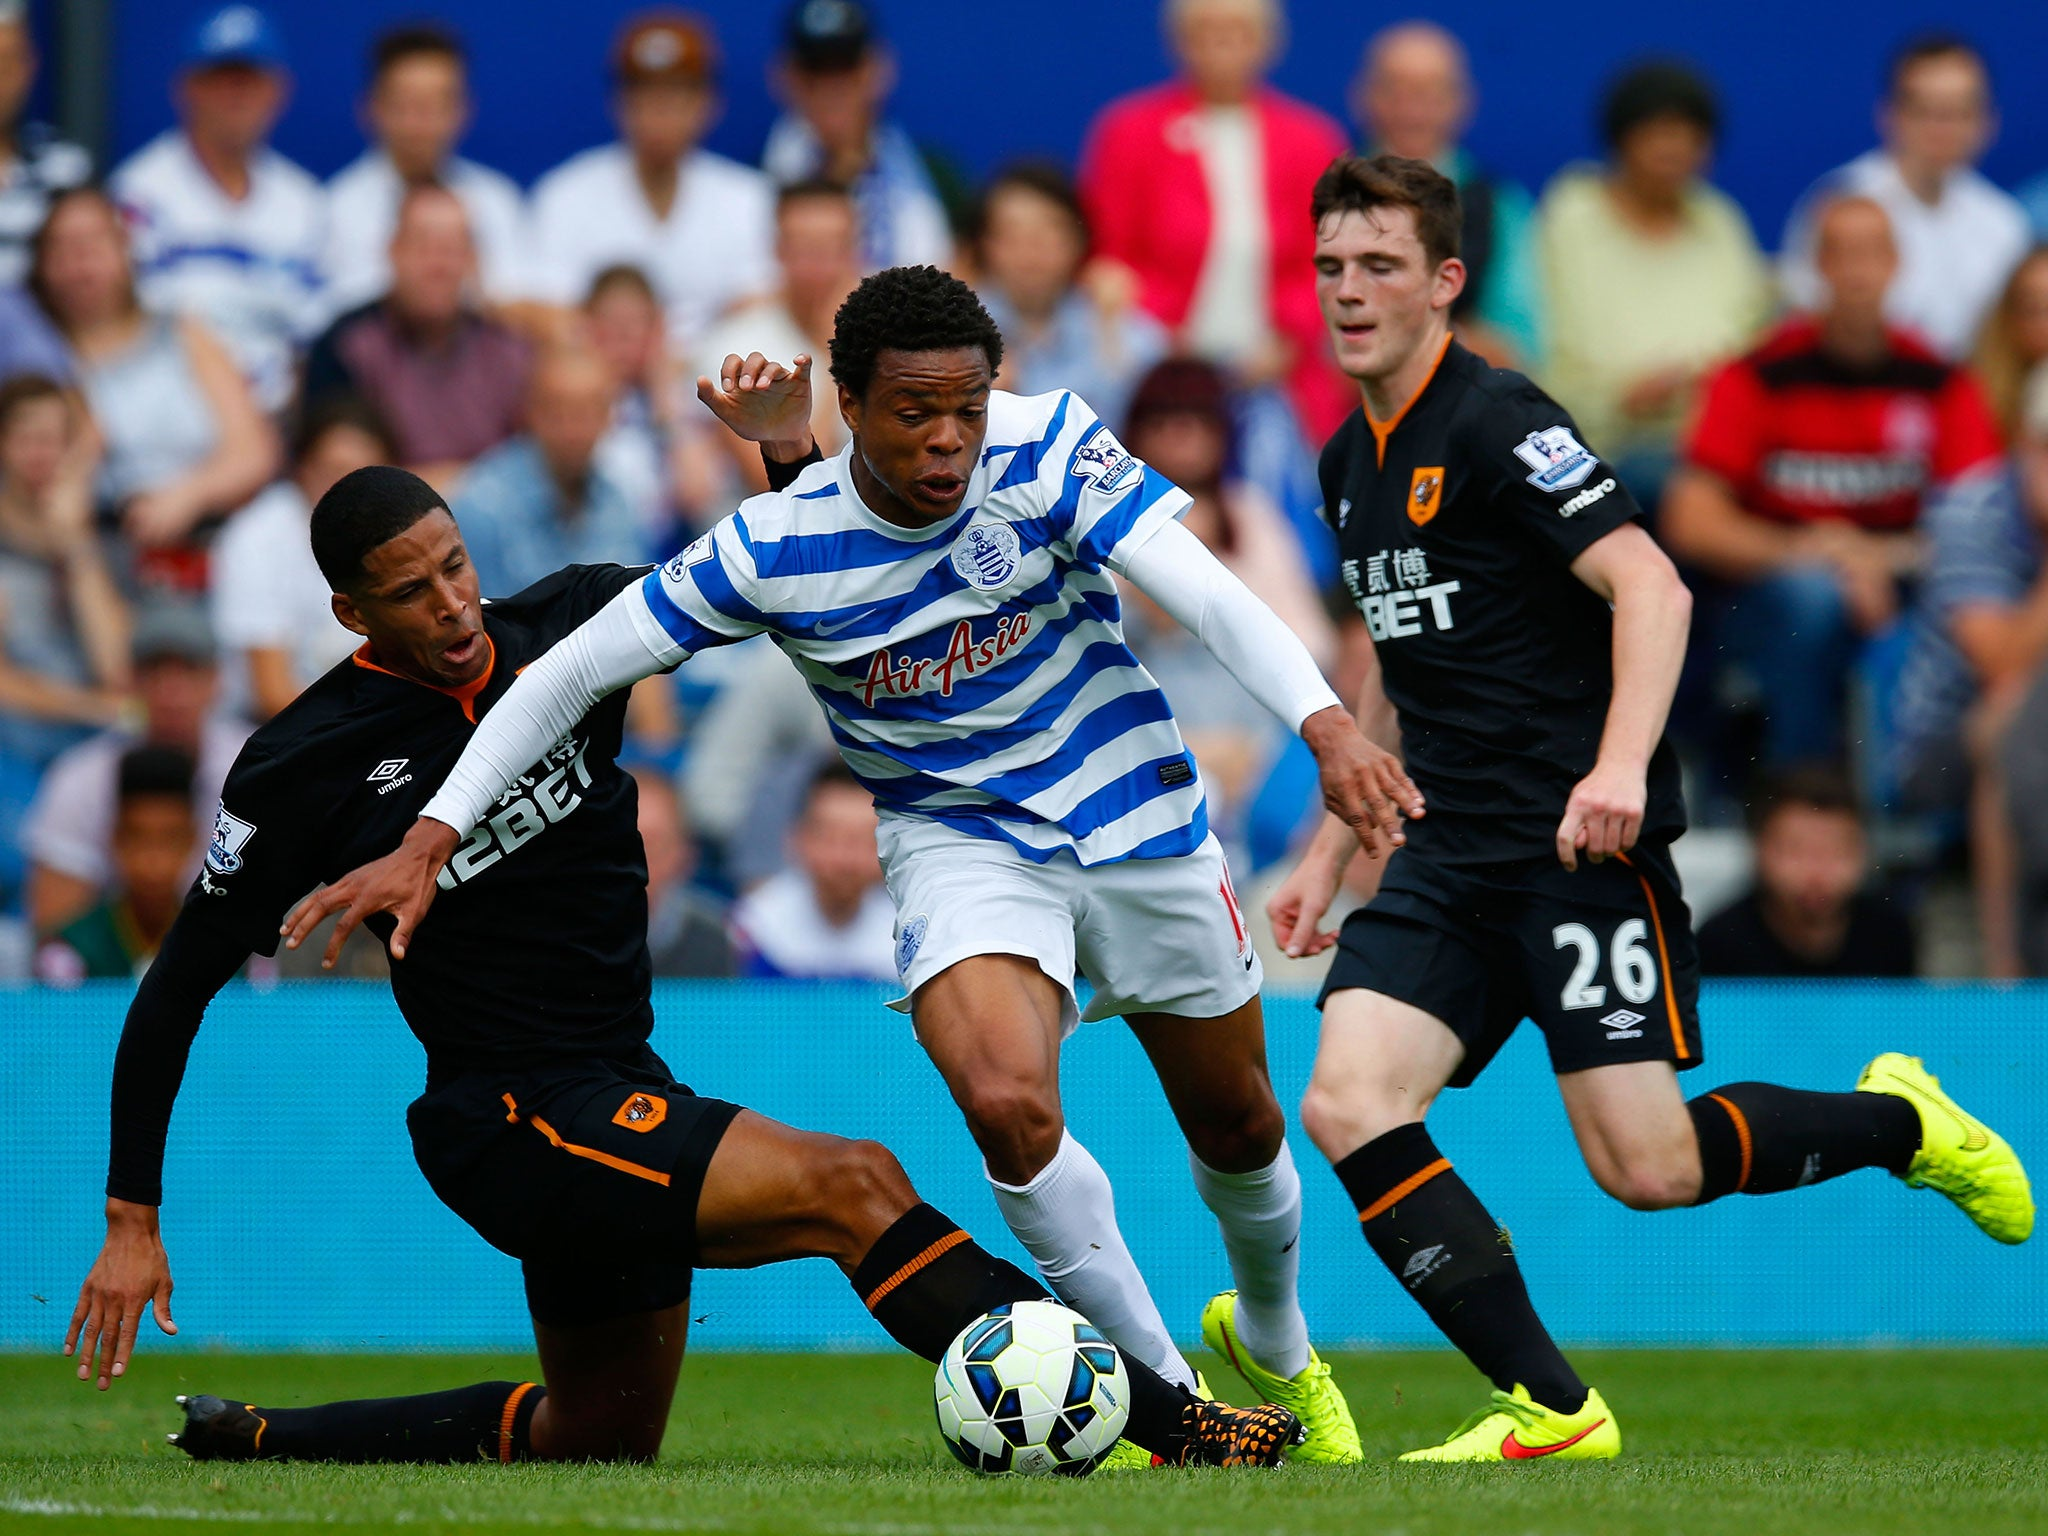 Remy Chelsea Wallpaper Loic Remy to Chelsea Blues